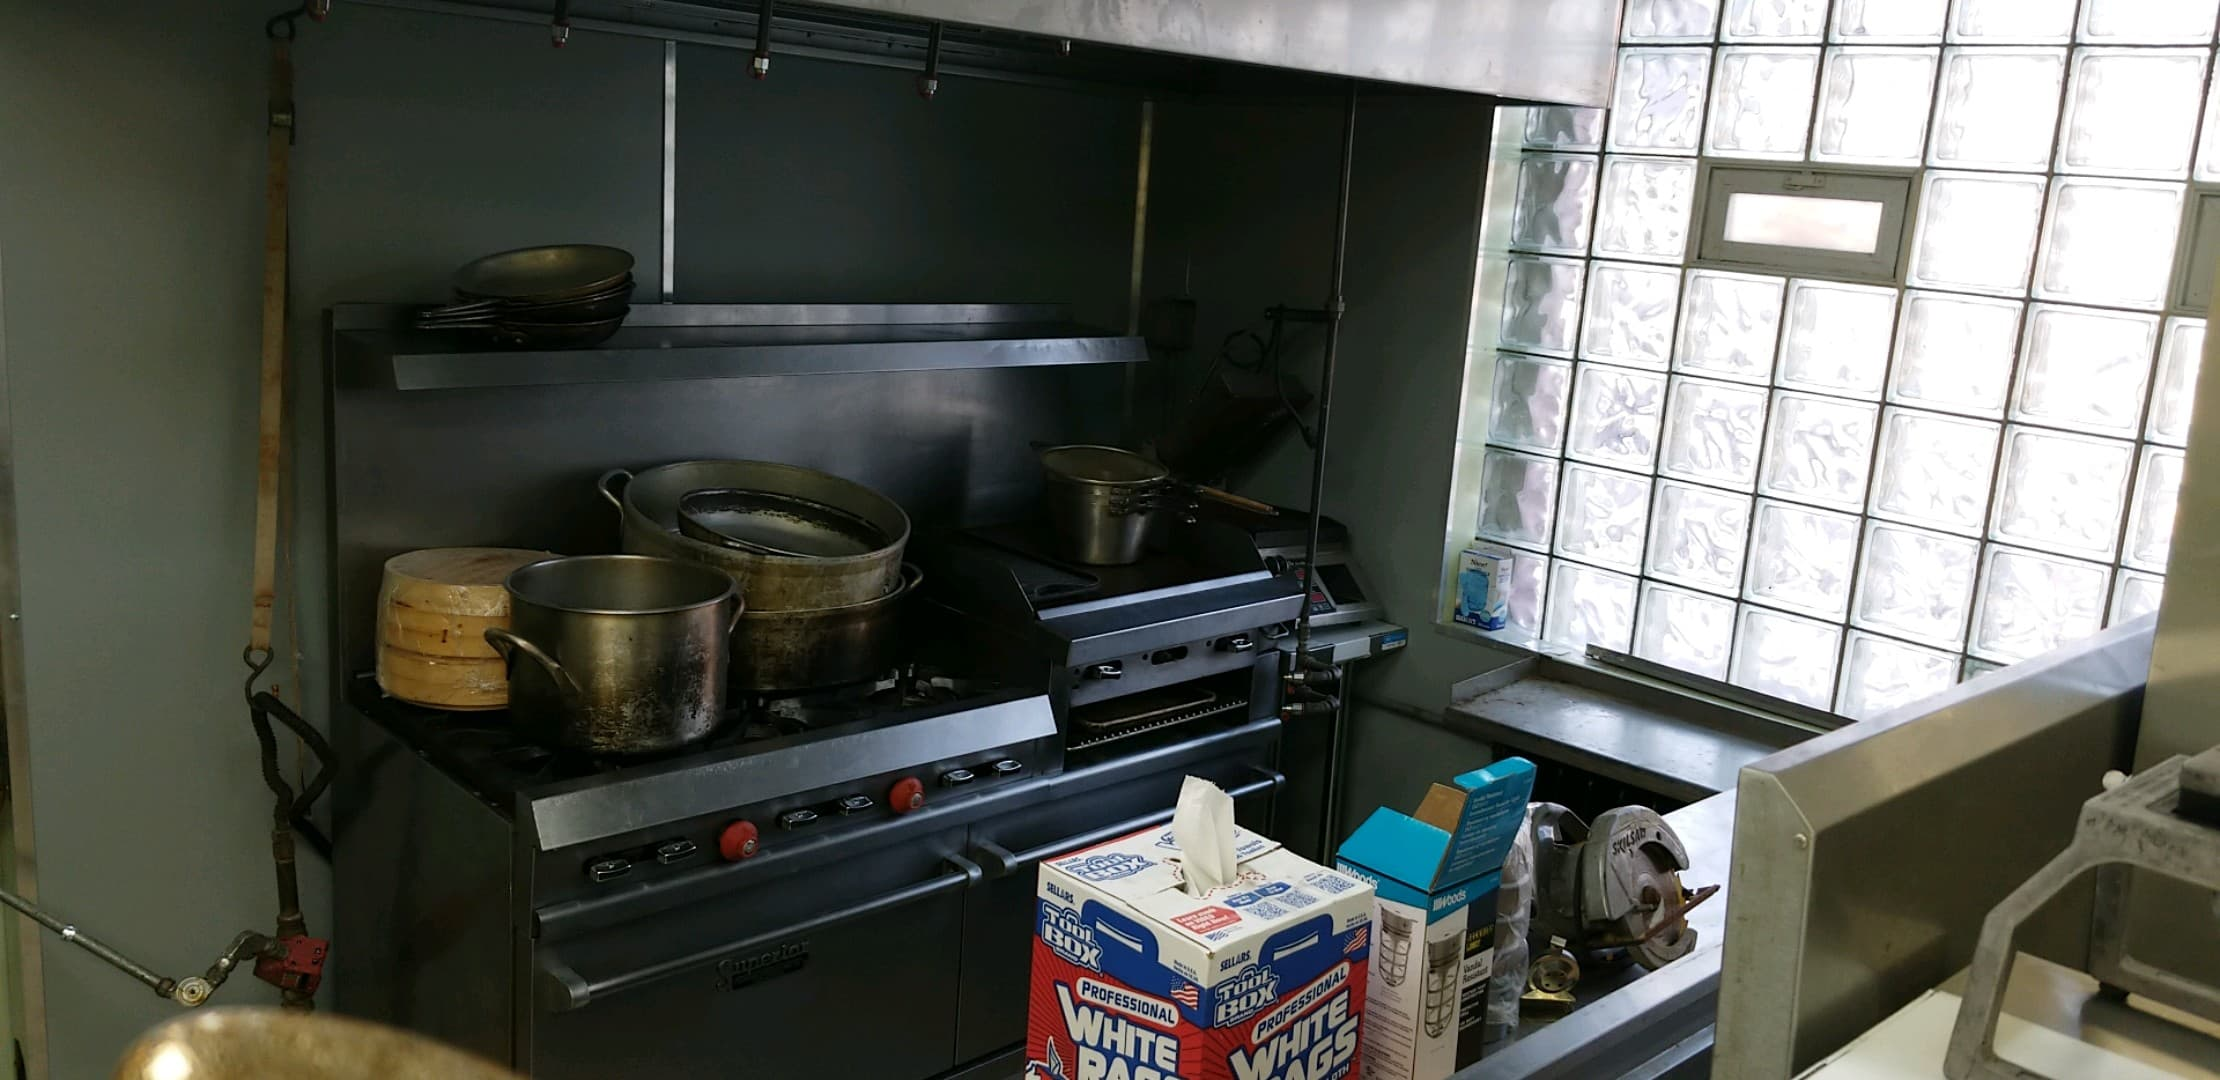 Holy Calamity - its looking like a kitchen